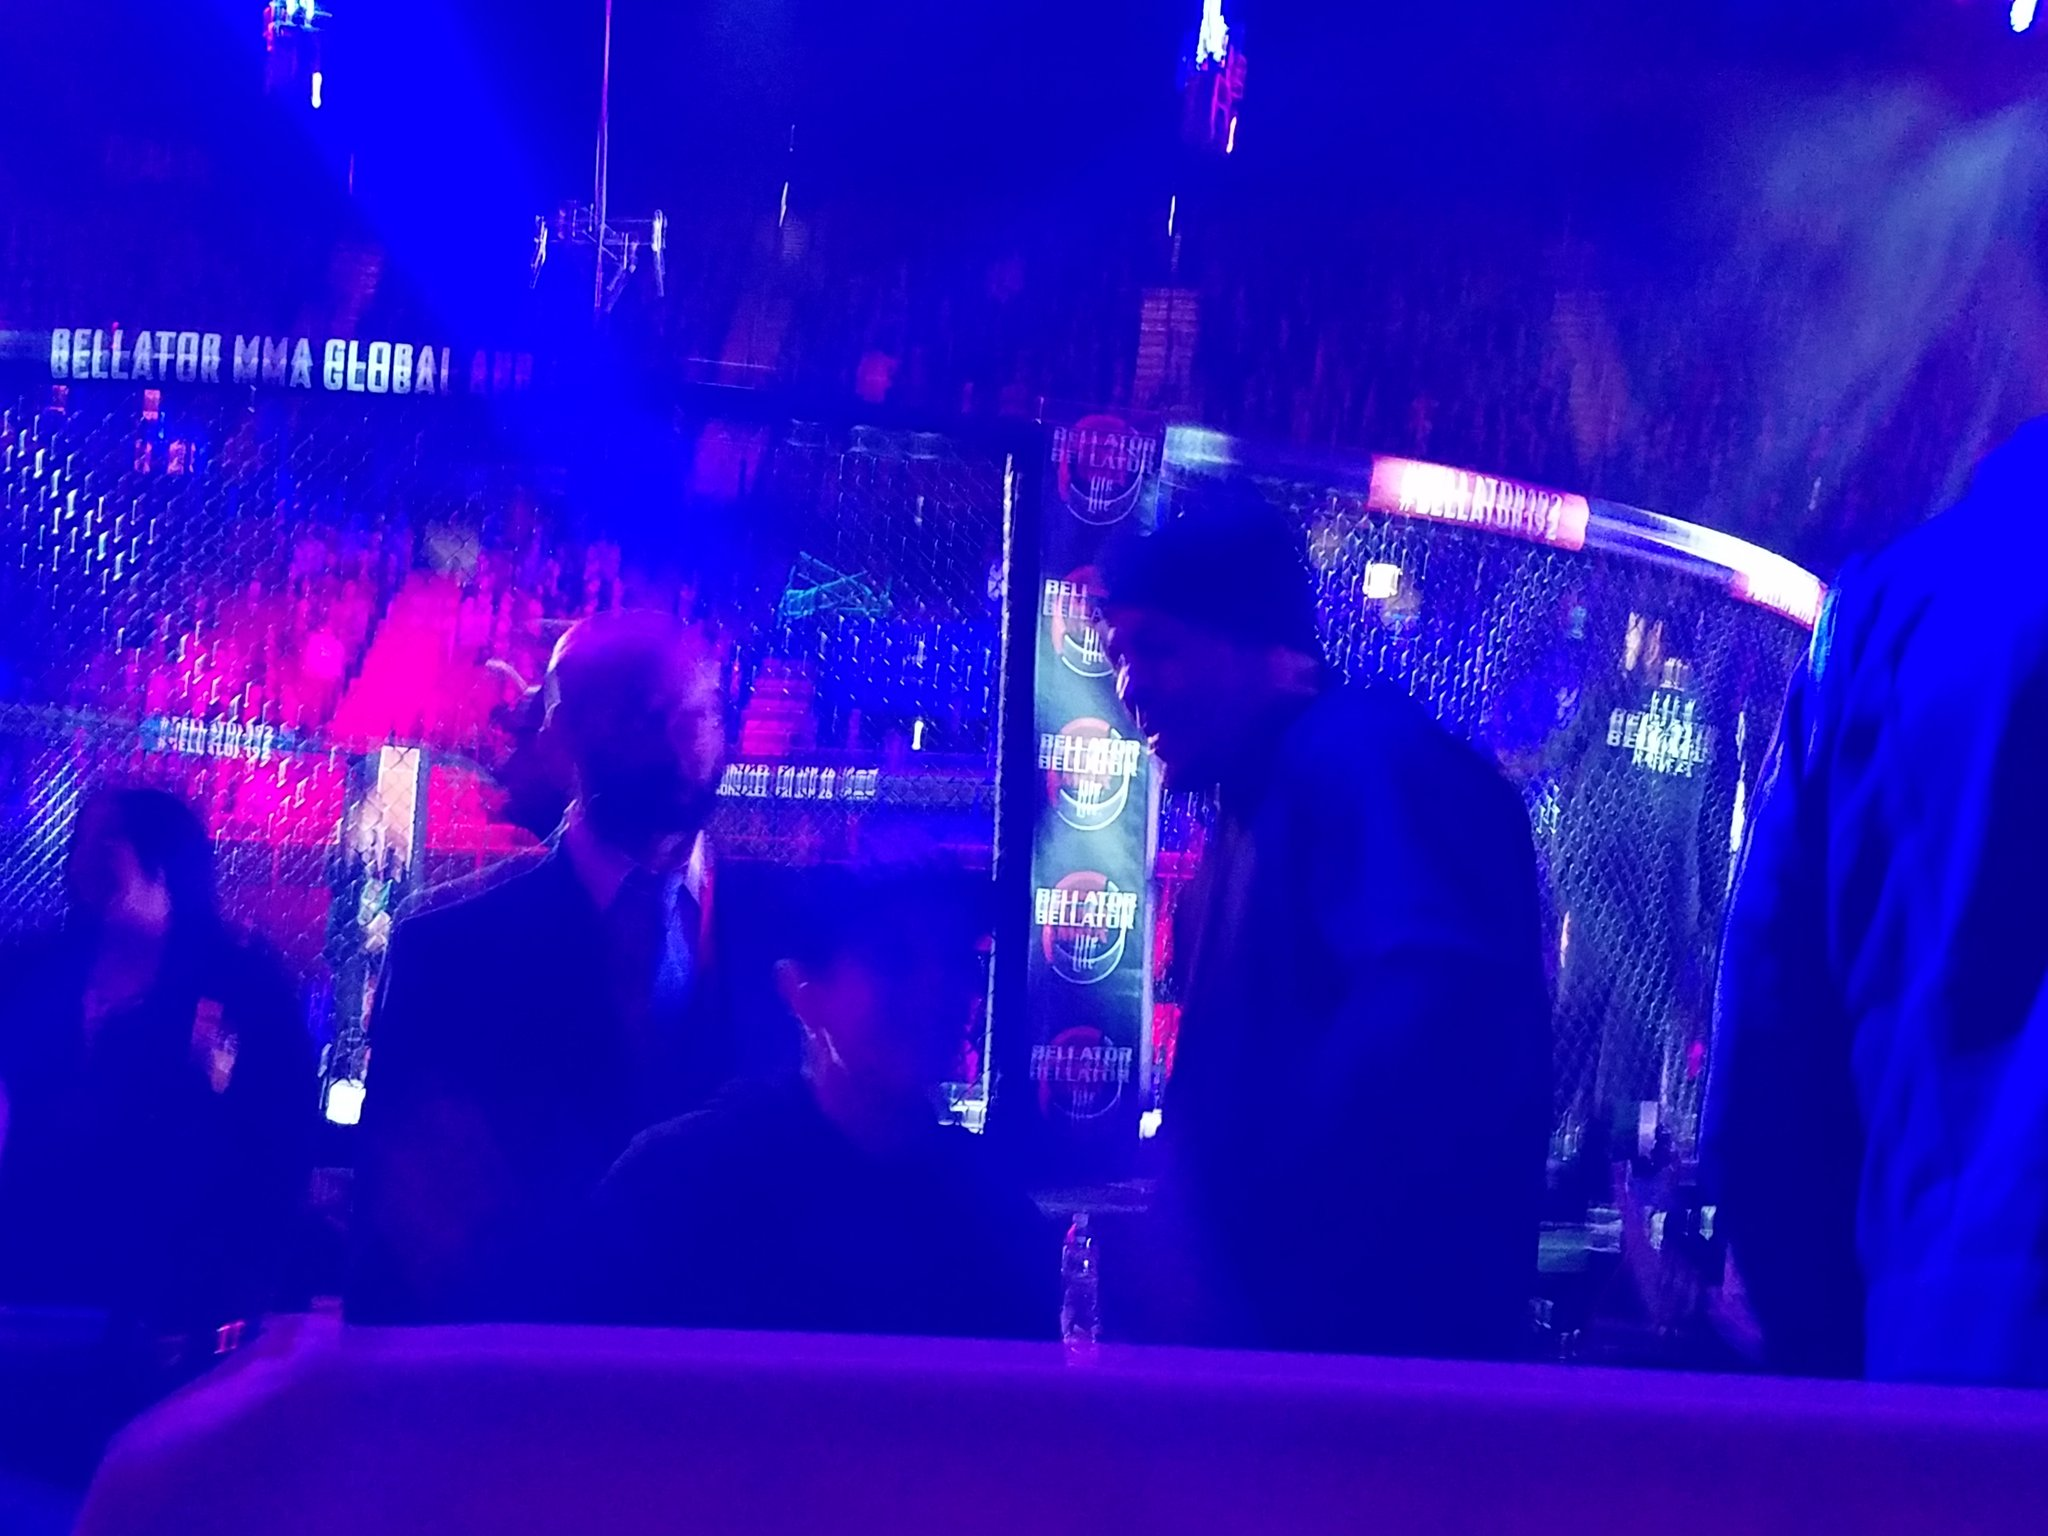 @NateDiaz209 is ringside.  #Bellator192 https://t.co/BW6HEiHoq5